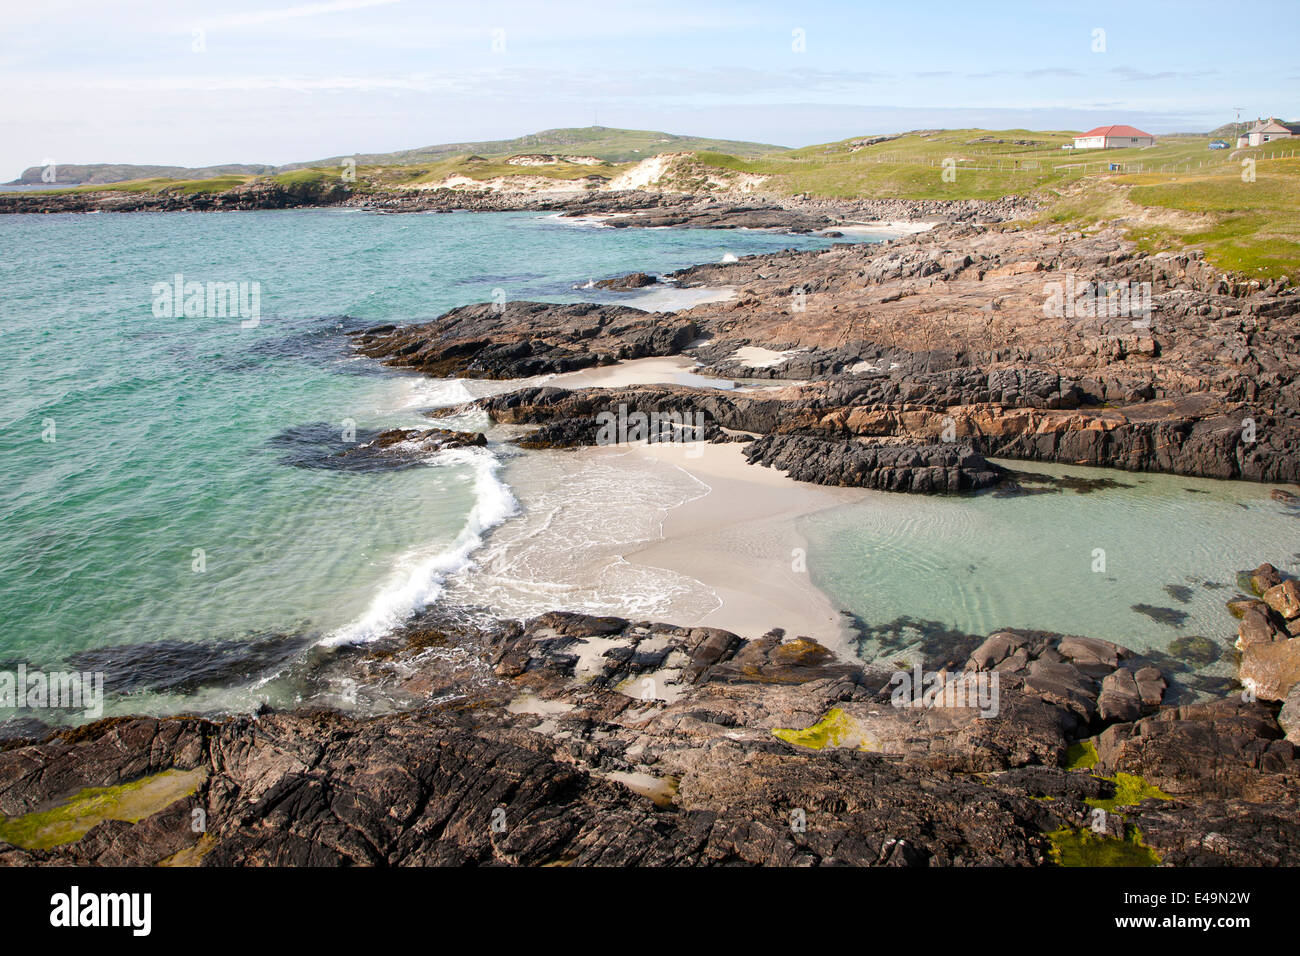 Atlantic coastline and sea Isle of Barra, Outer Hebrides, Scotland - Stock Image